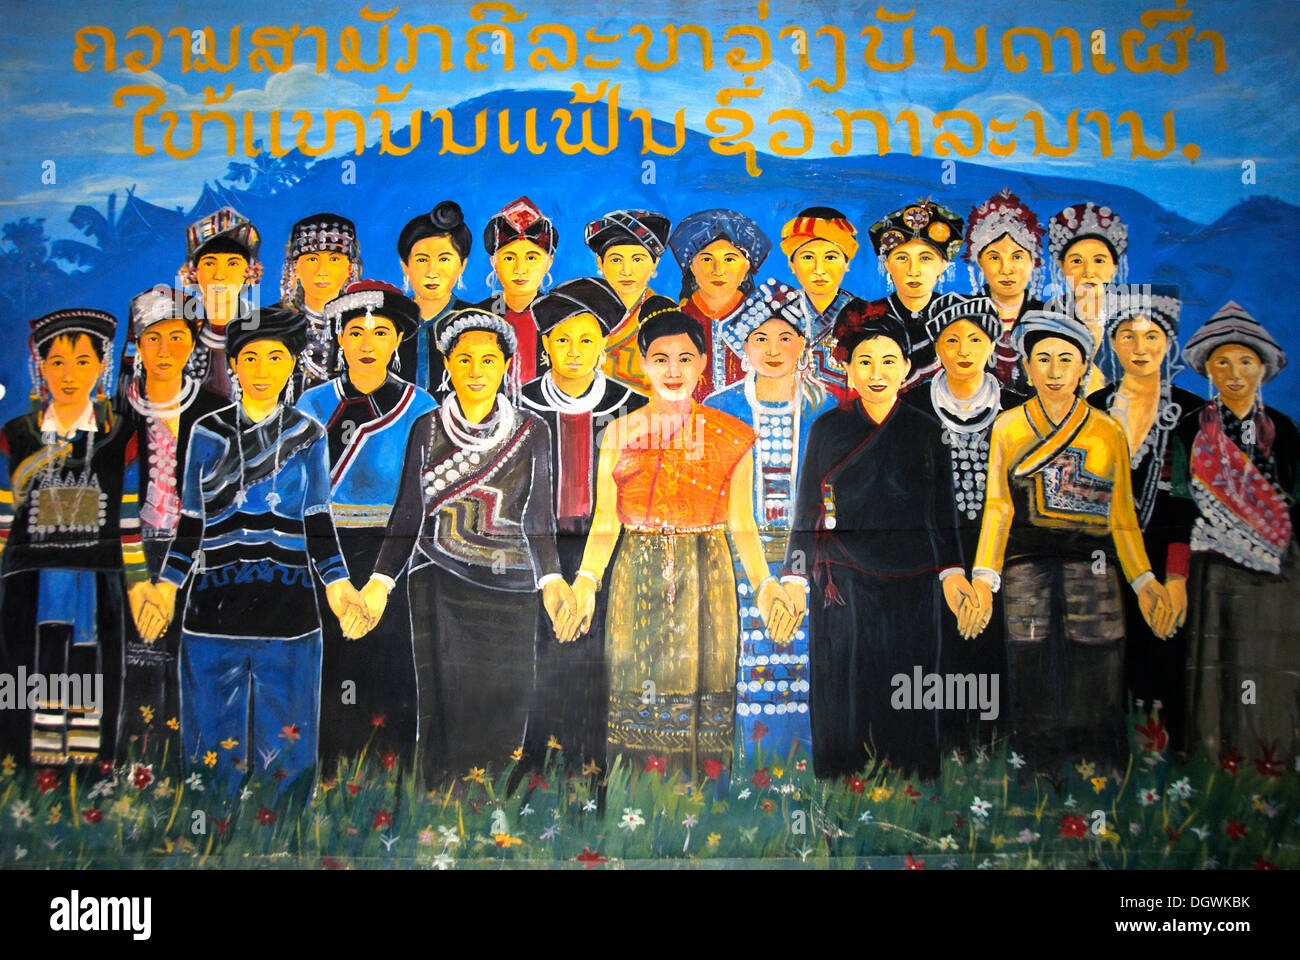 Painted communist propaganda poster, with lettering in Laotian script, advertising the friendship between the ethnic groups, - Stock Image